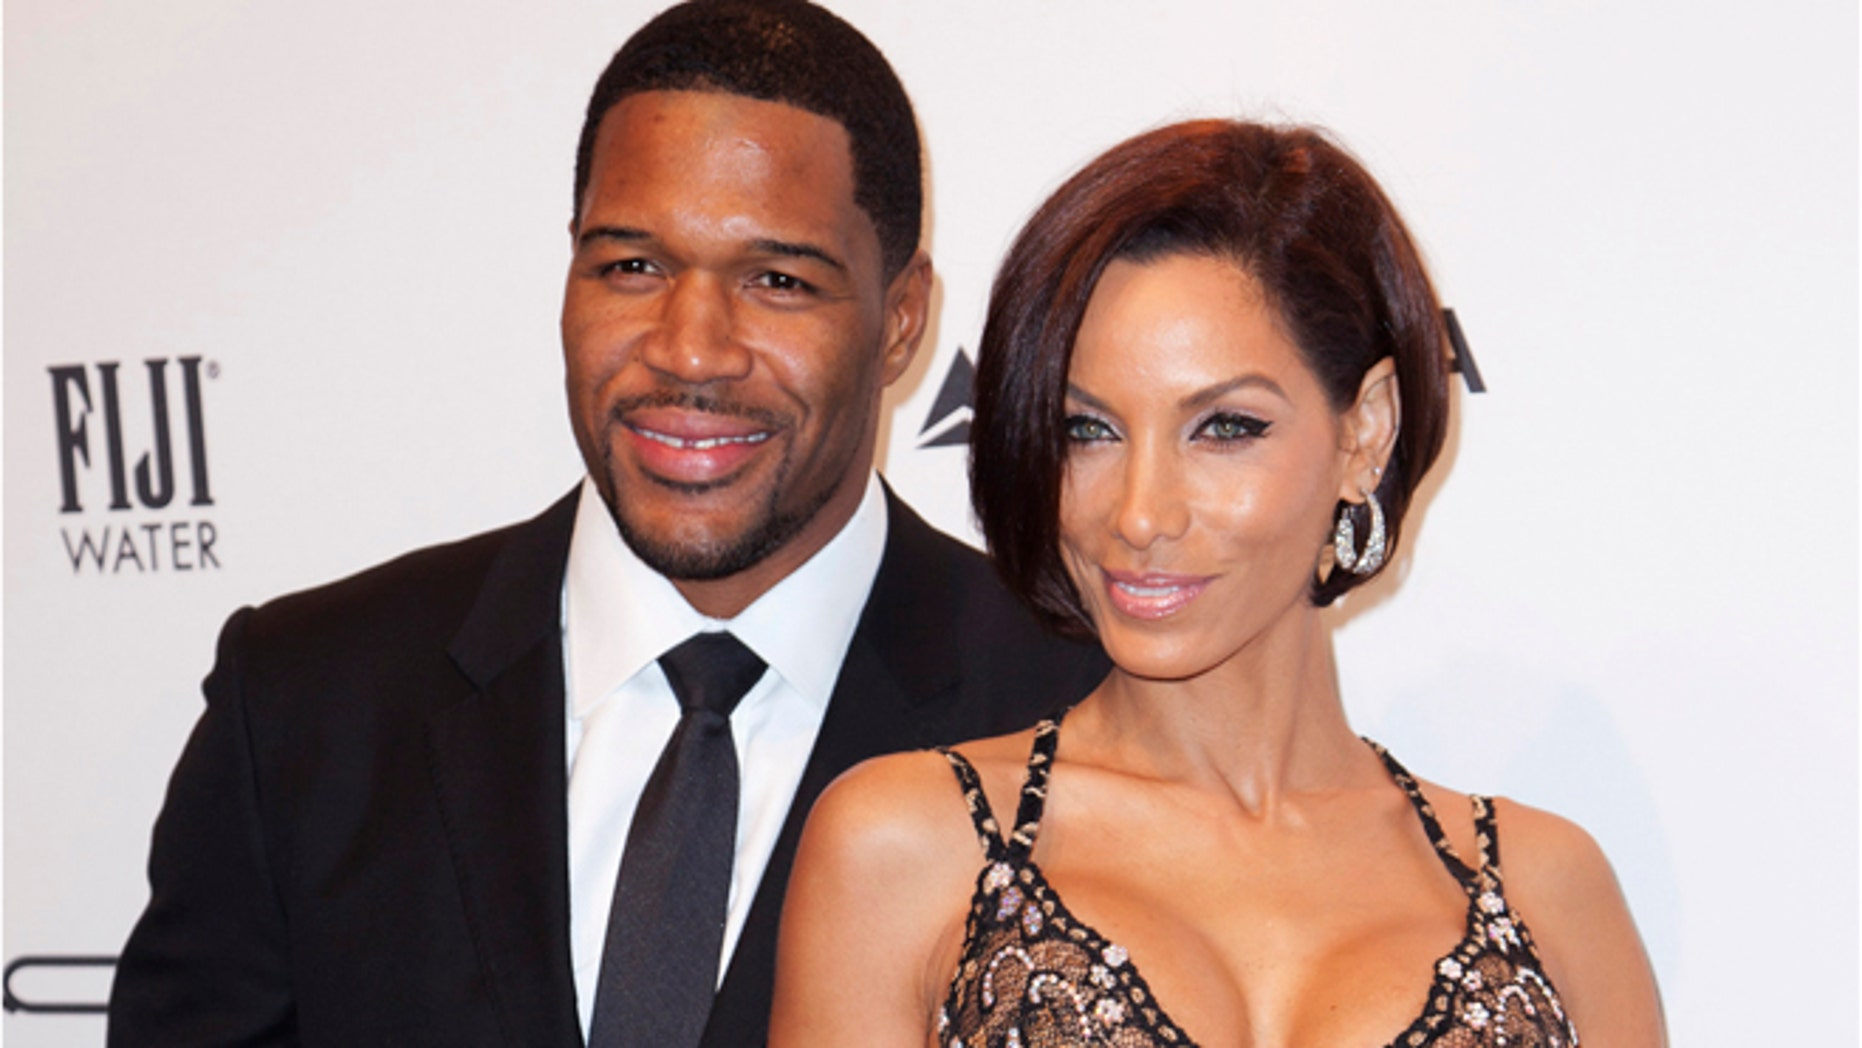 Former NFL player Michael Strahan and model and reality TV star Nicole Murphy attend the American Foundation for AIDS Research (amfAR) New York Gala to kick off Fall 2013 Fashion Week in New York February 6, 2013. REUTERS/Andrew Kelly (UNITED STATES - Tags: ENTERTAINMENT FASHION SPORT FOOTBALL) - RTR3DFX4